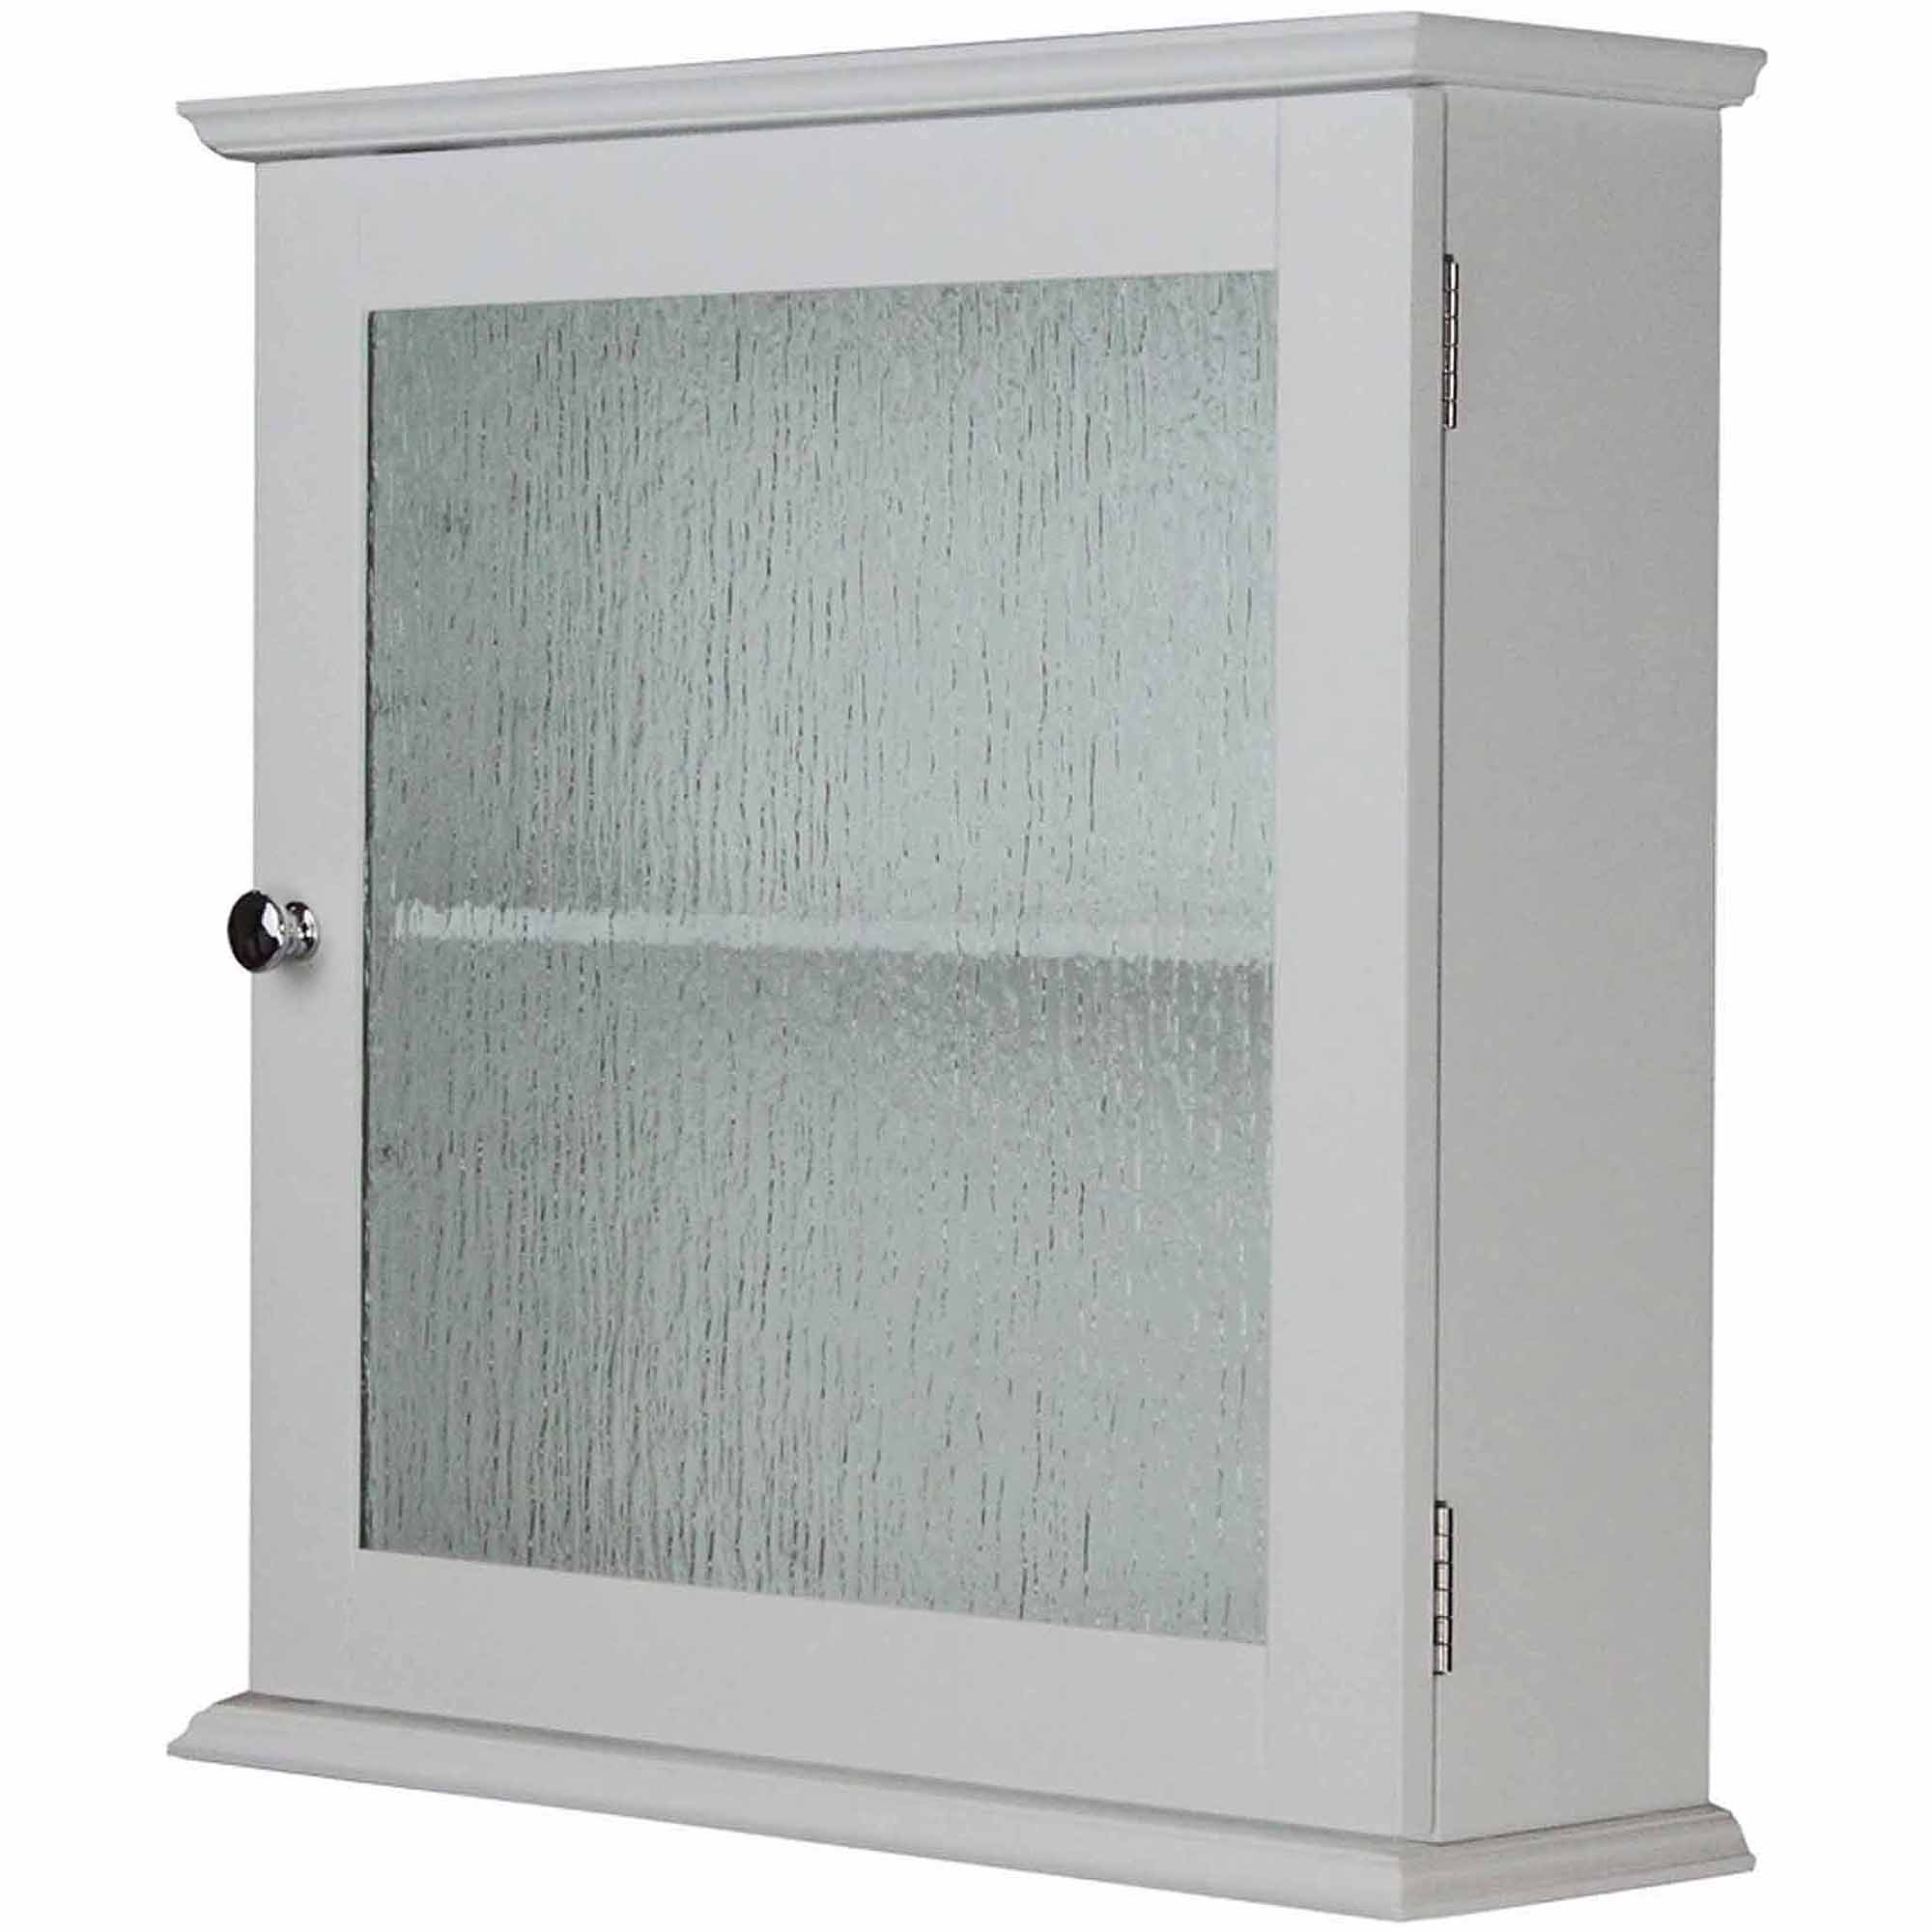 Connor Medicine Cabinet With 1 Glass Doo   Walmart.com